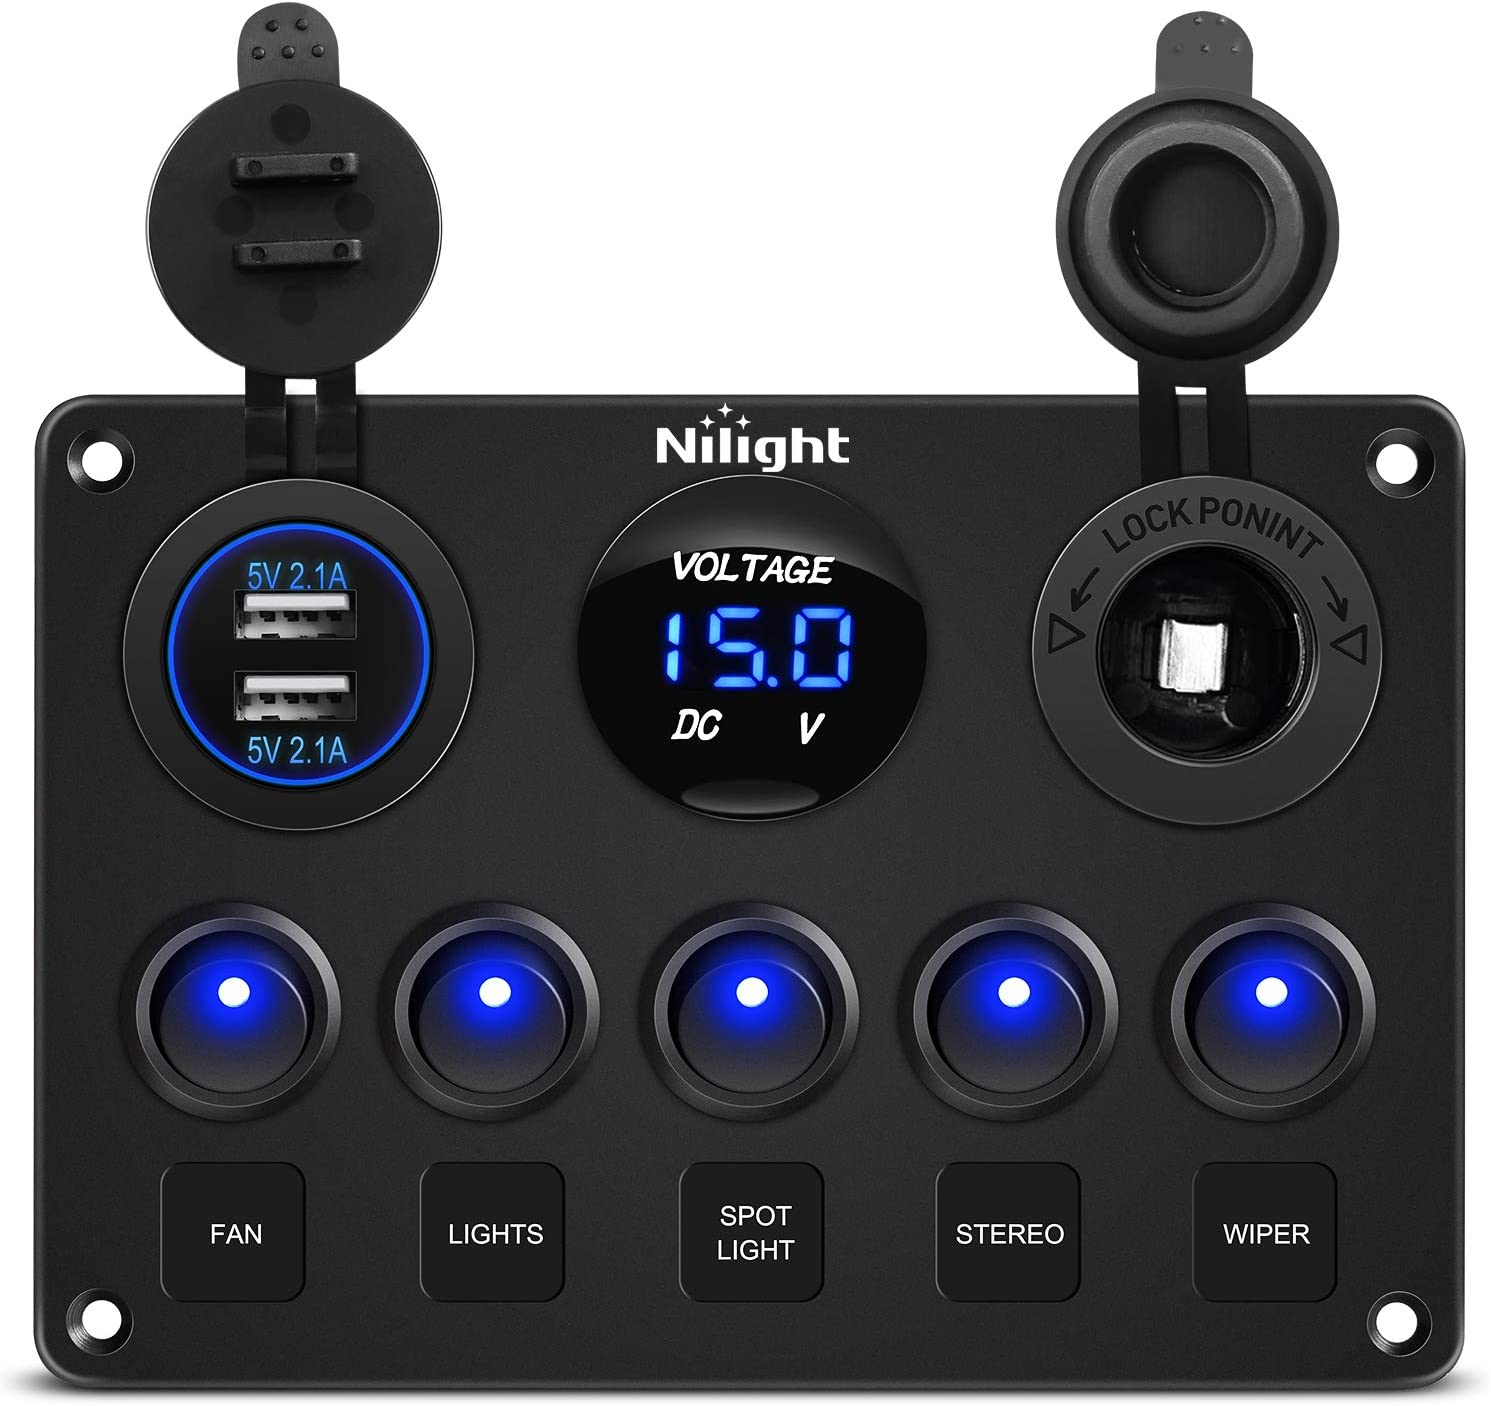 Nilight 90101E 5Gang Multi-Function 5 Gang Rocker Dual USB Charger + Digital Volmeter +12V Outlet Pre-Wired Switch Panel with Circuit Breakers for RV Car Boat Truck Trailer,2 Years Warranty: Automotive